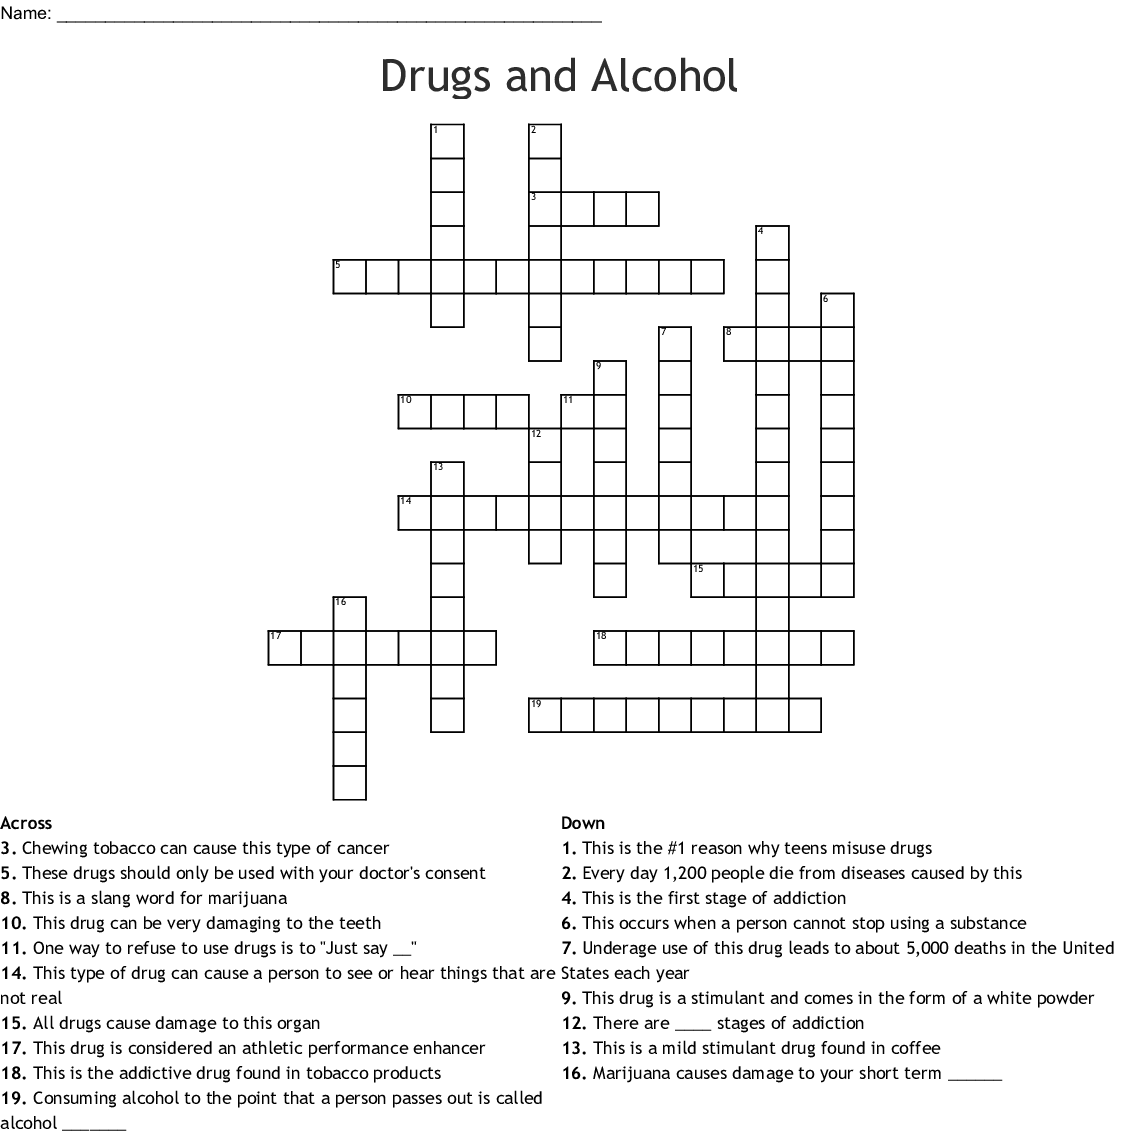 Drugs And Alcohol Crossword Wordmint